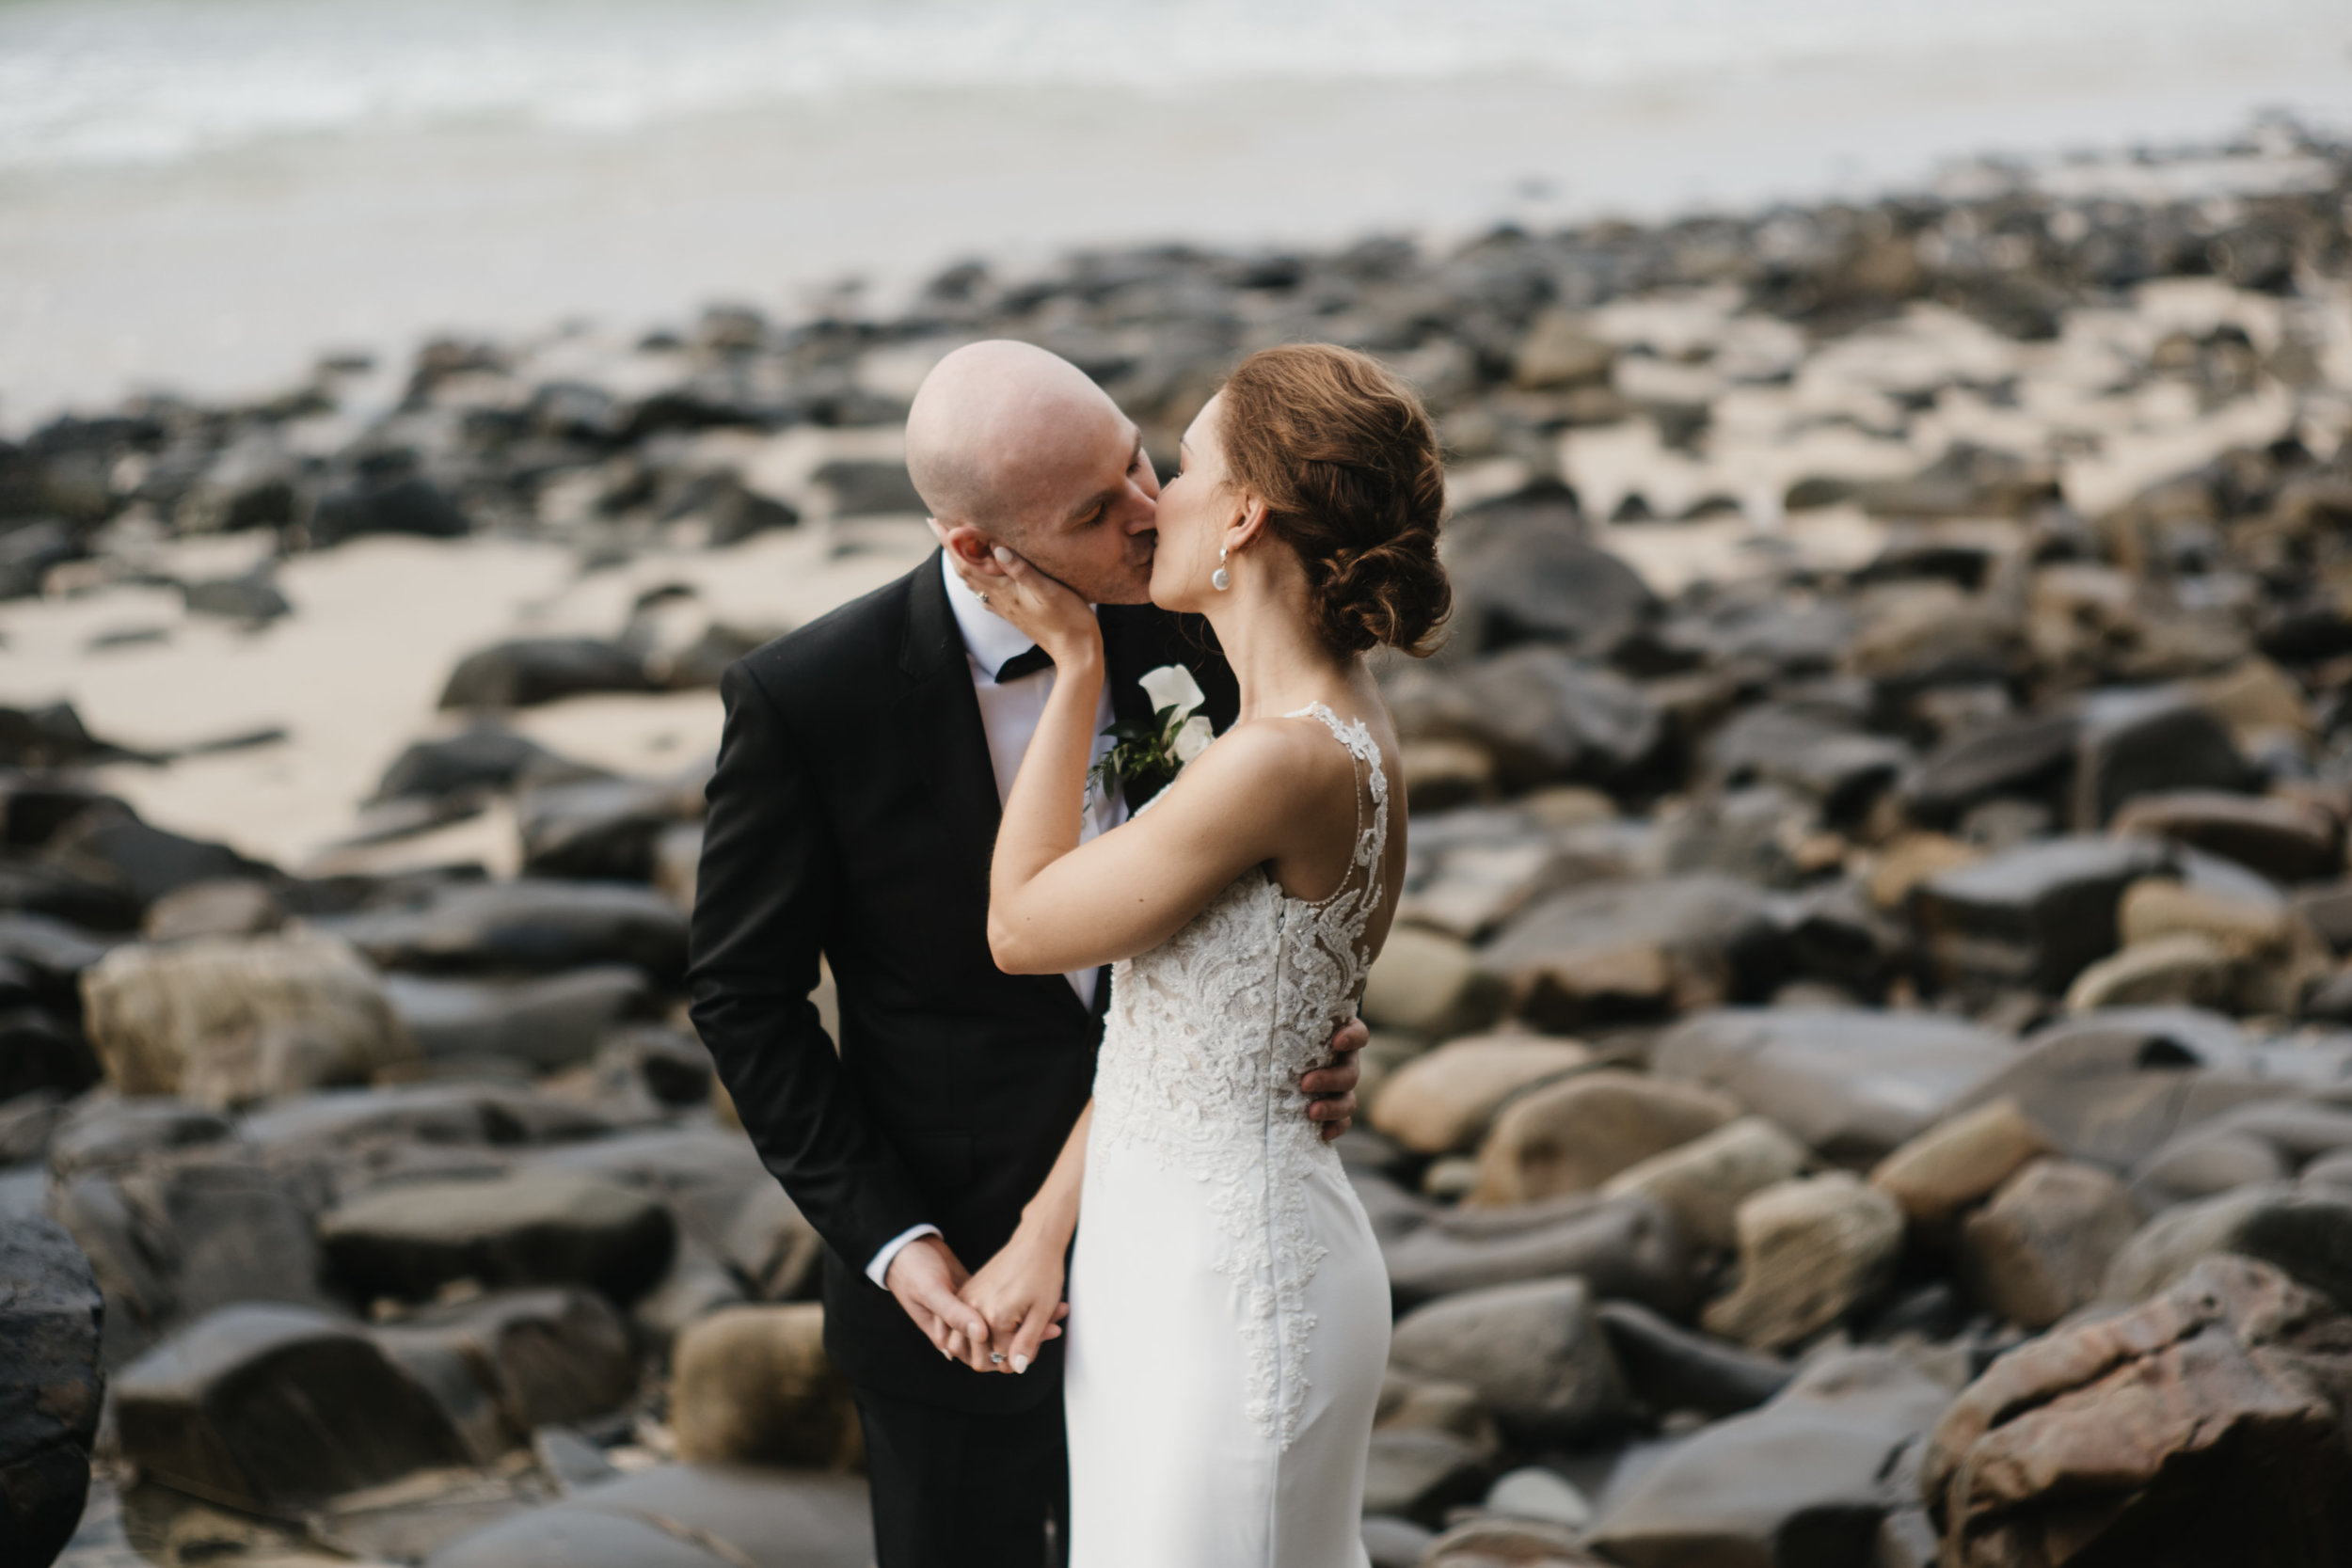 Jacquie and Jon Wedding EPHEMERAL CREATIVE Noosa beach wedding